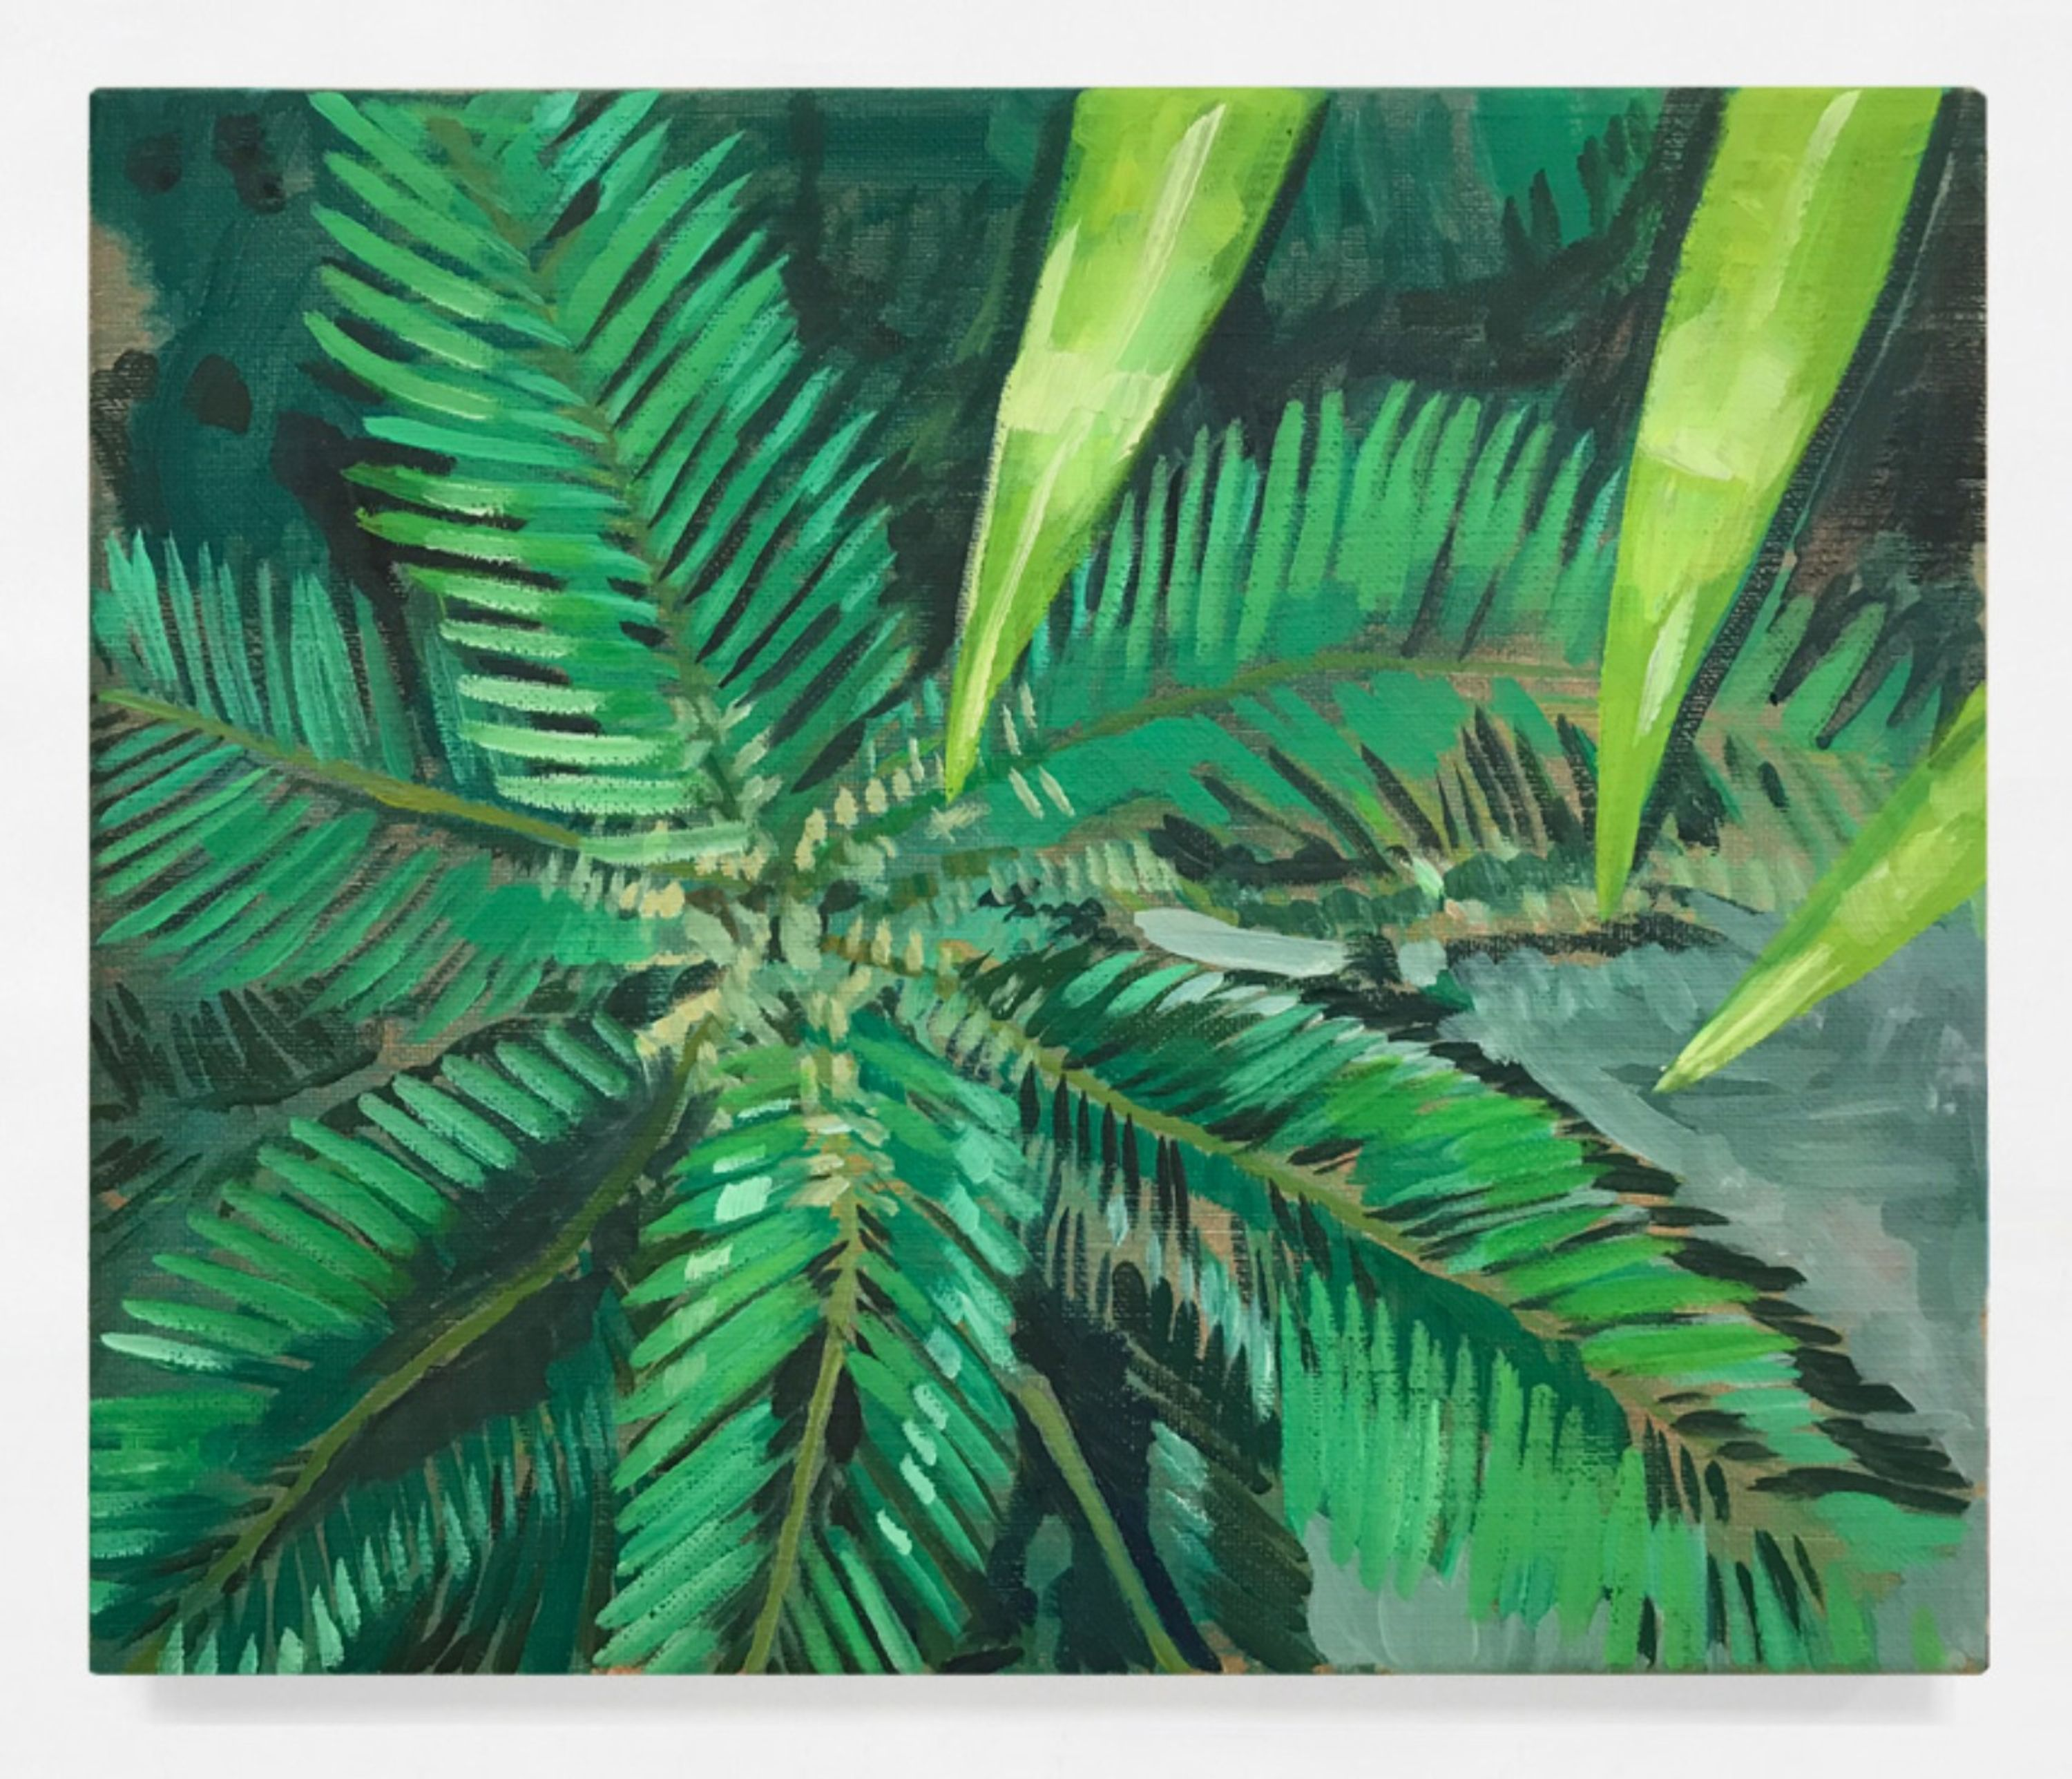 Palm on the Floor 2 by Ditte Ejlerskov, Galleri Specta